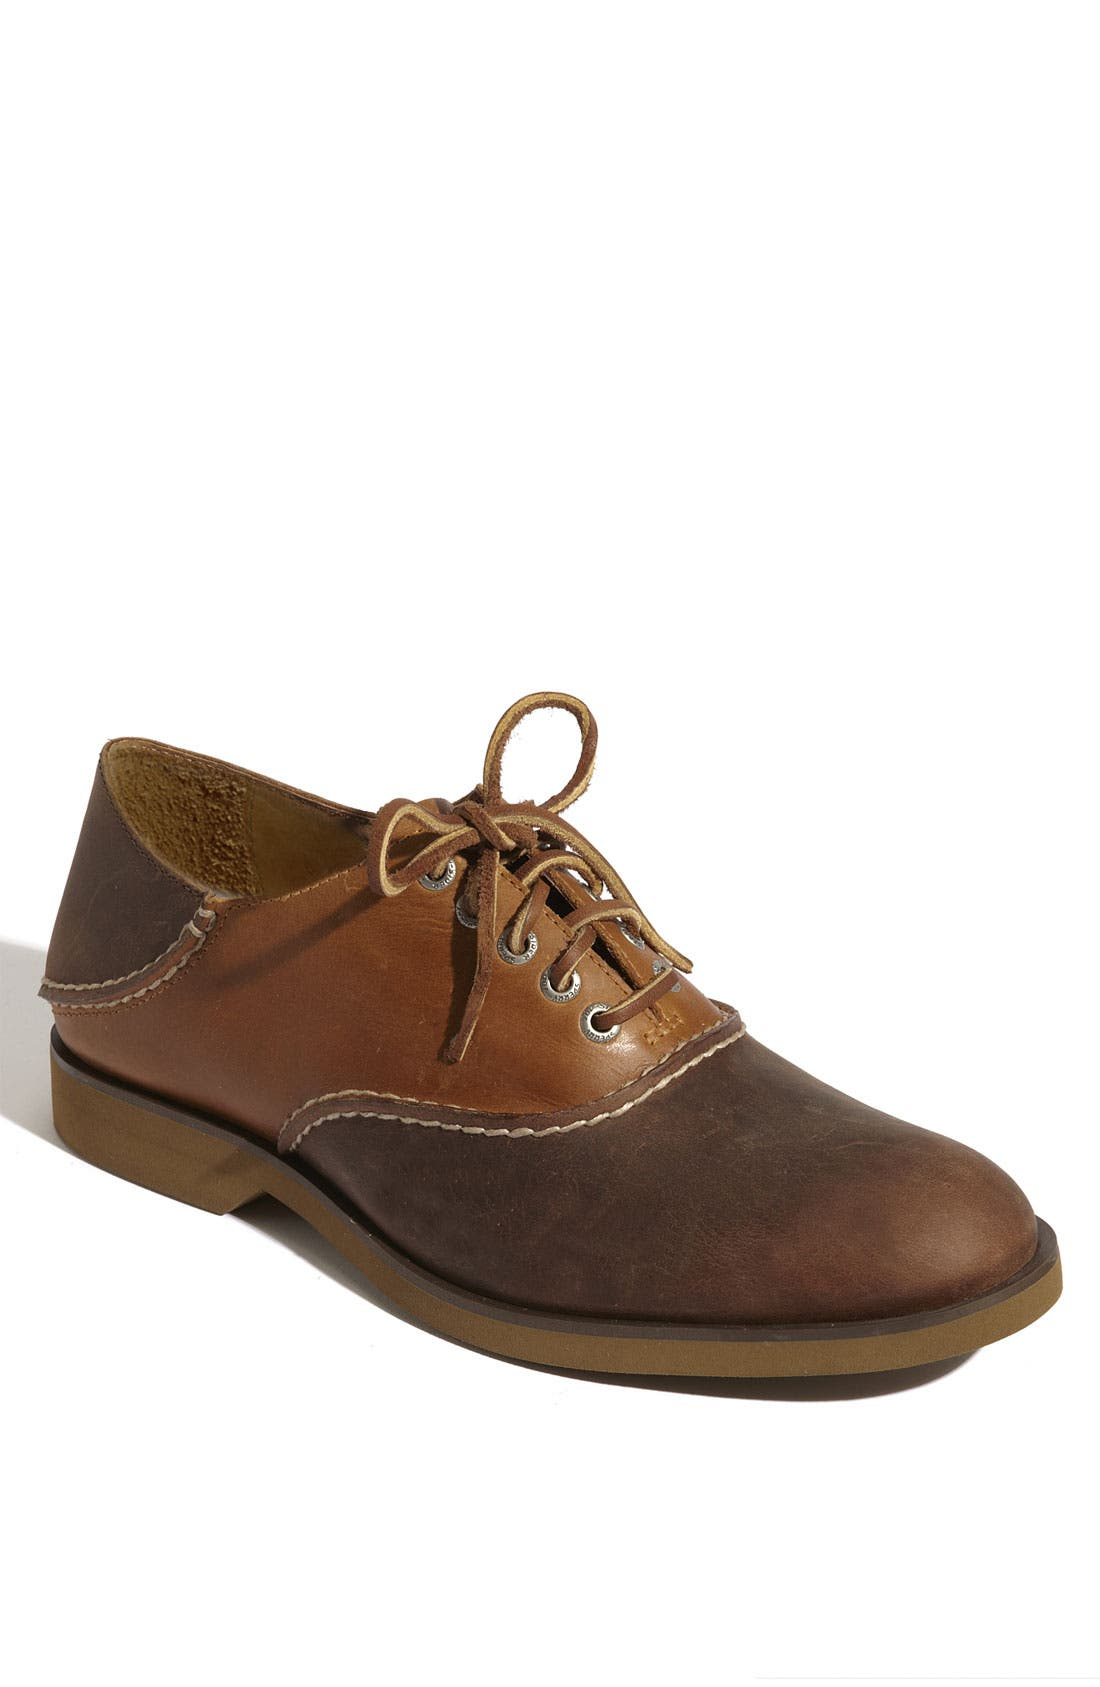 Alternate Image 1 Selected - Sperry Top-Sider® 'Boat' Oxford Saddle Shoe